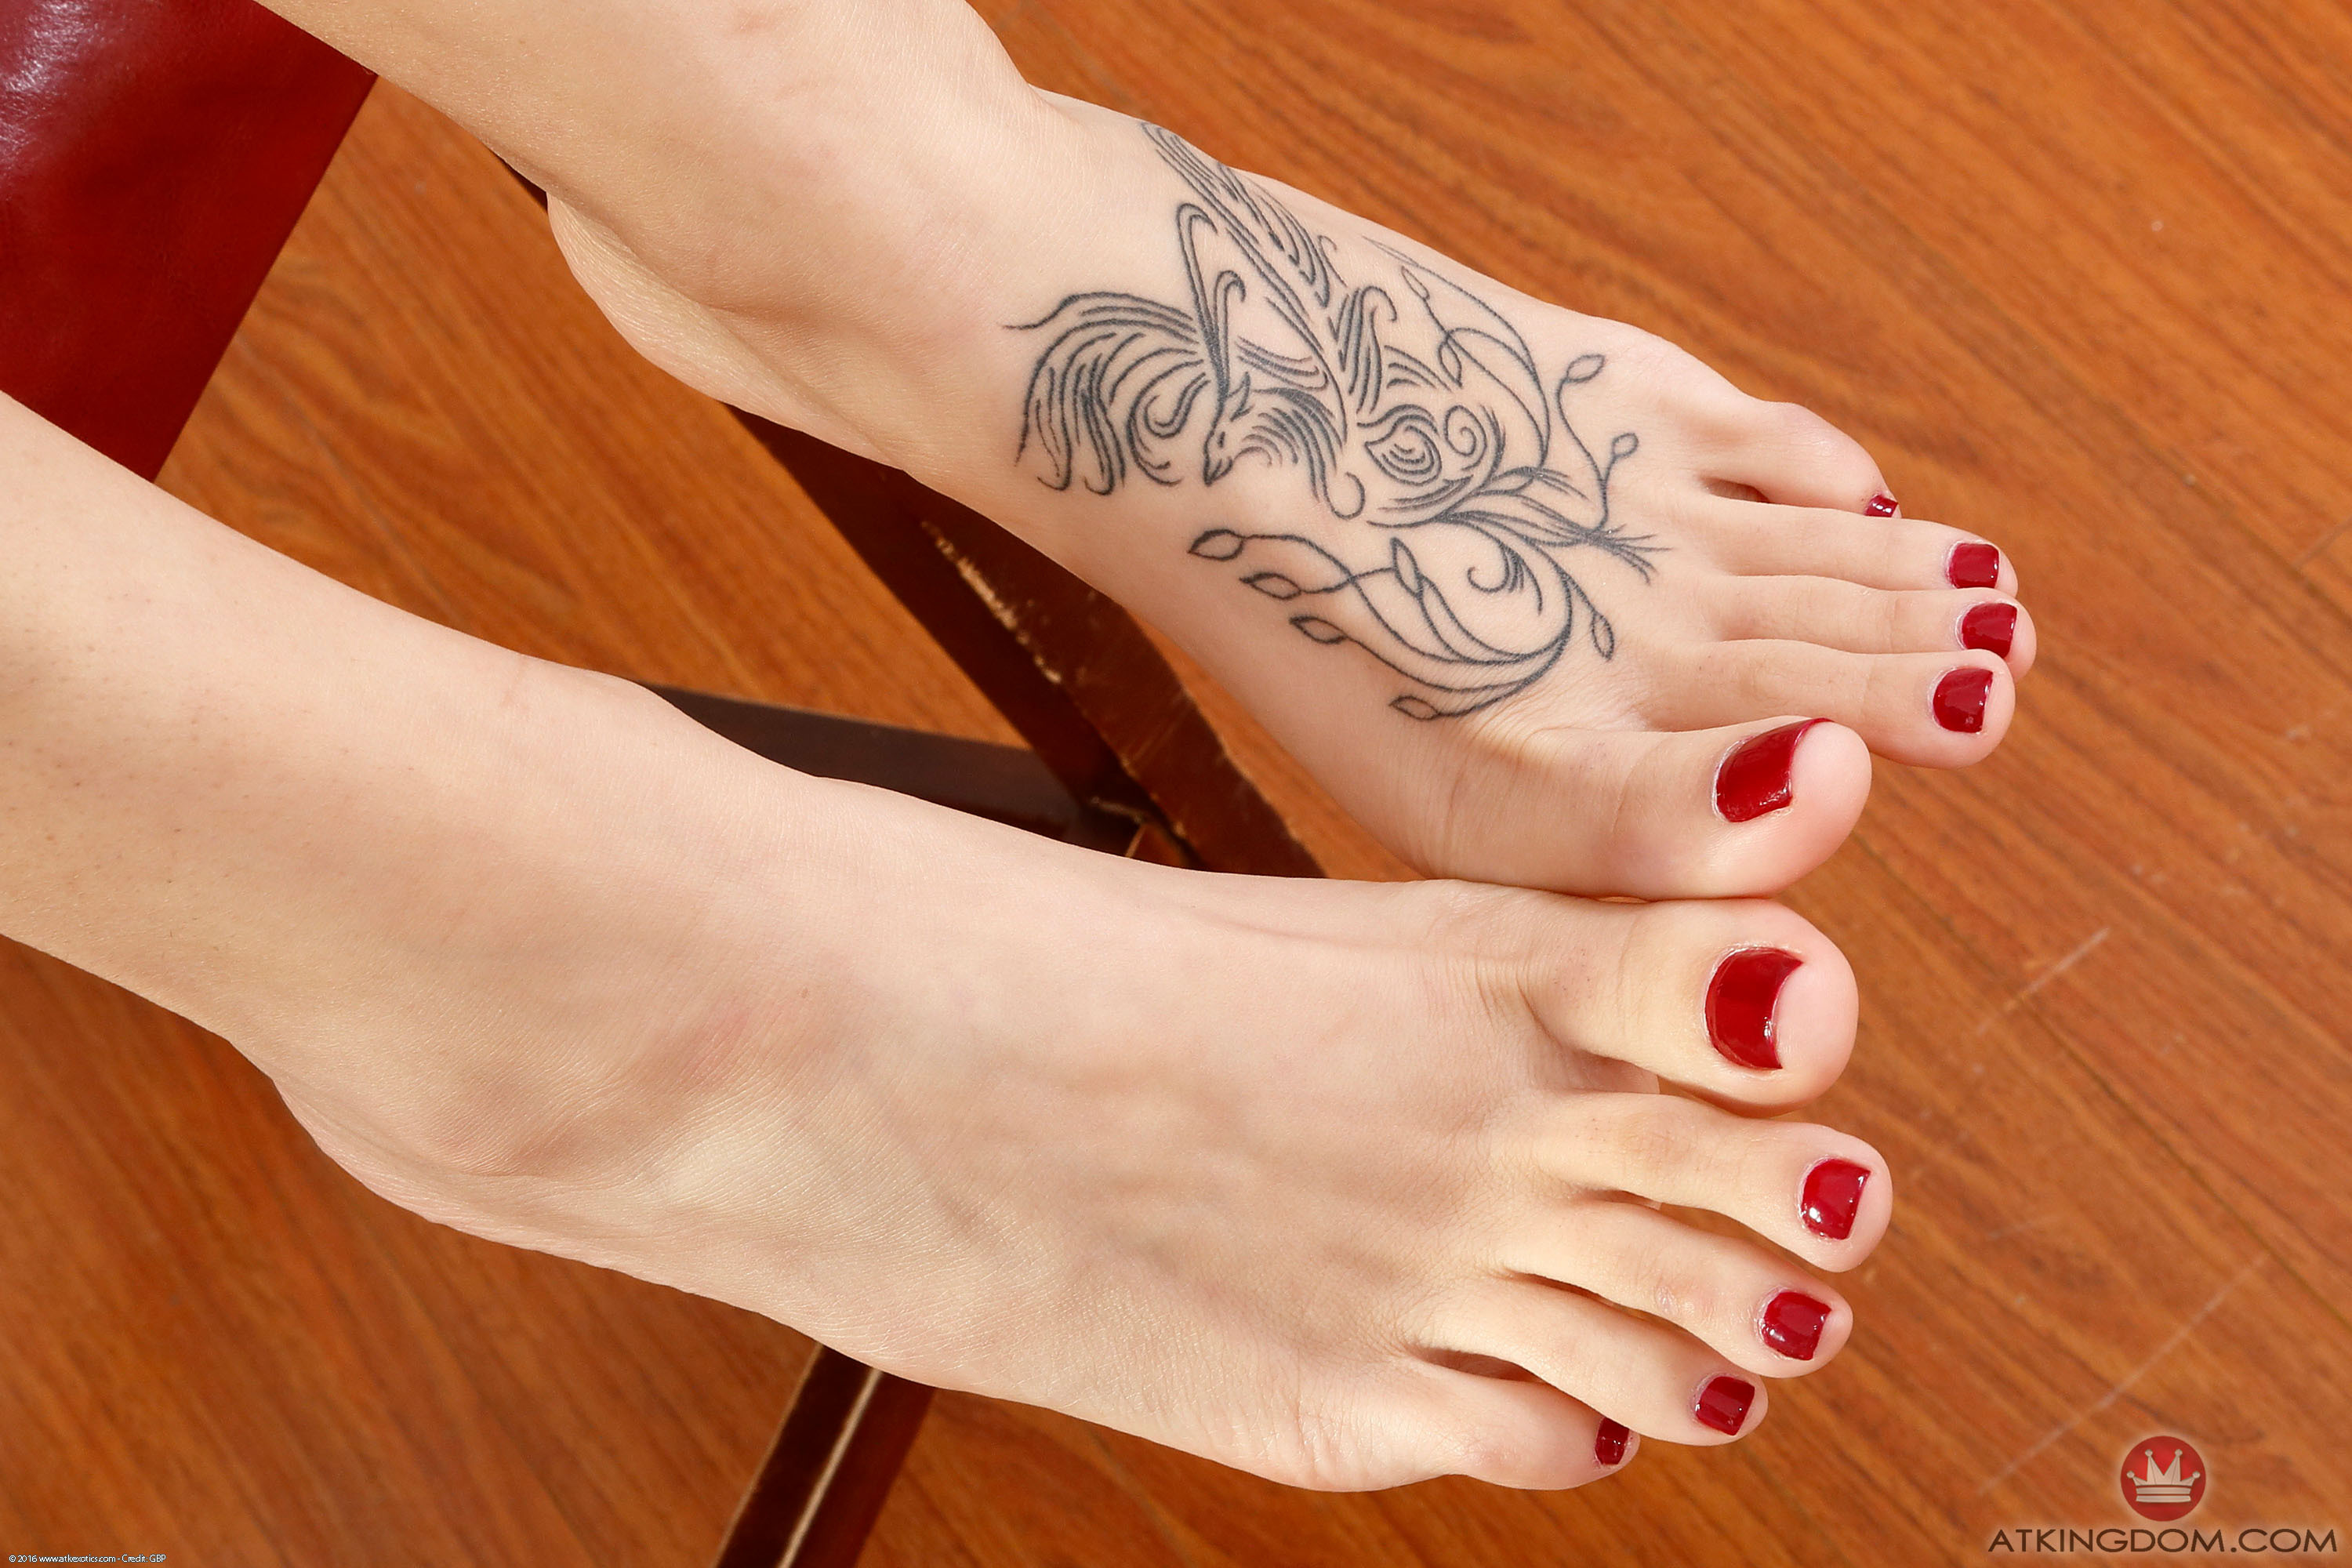 Audrey royal feet